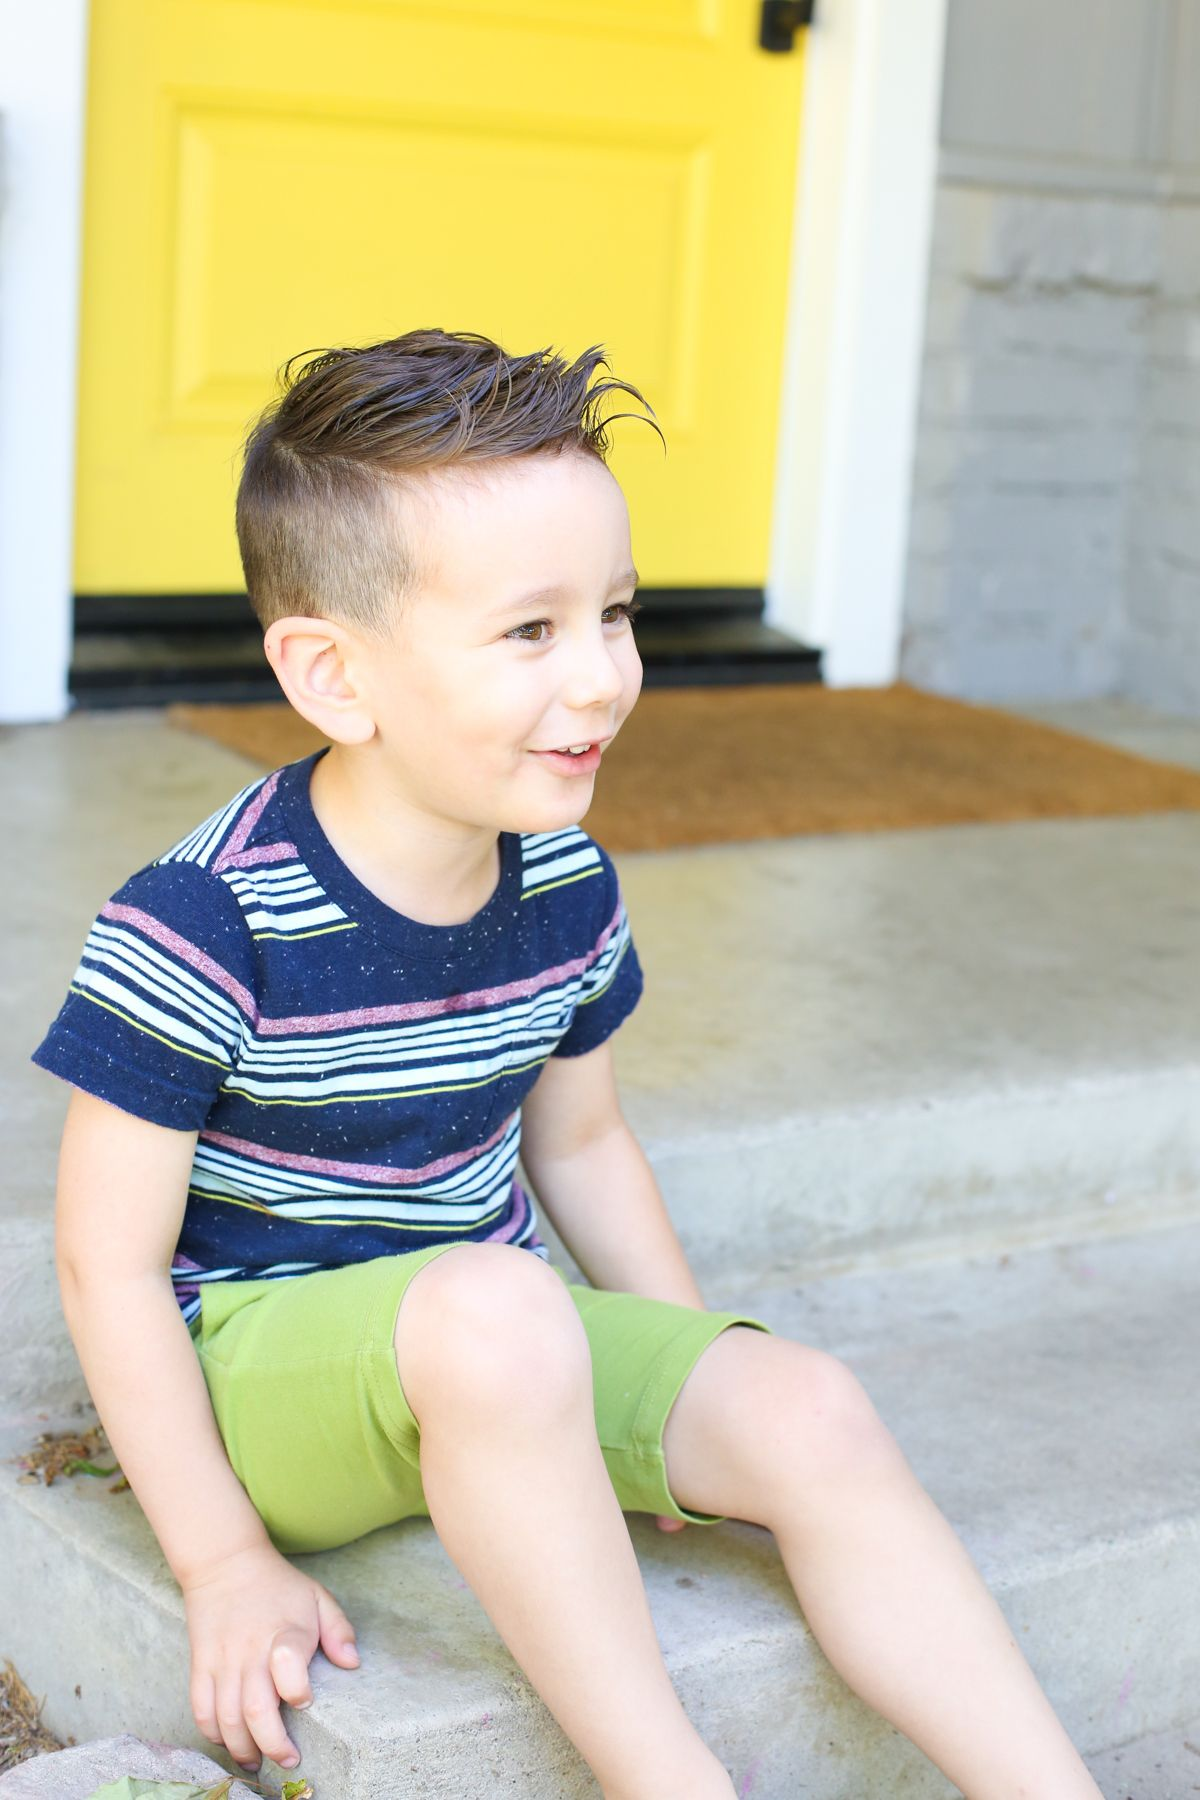 How To Give A Toddler A Haircut Baby And Kid Style Pinterest